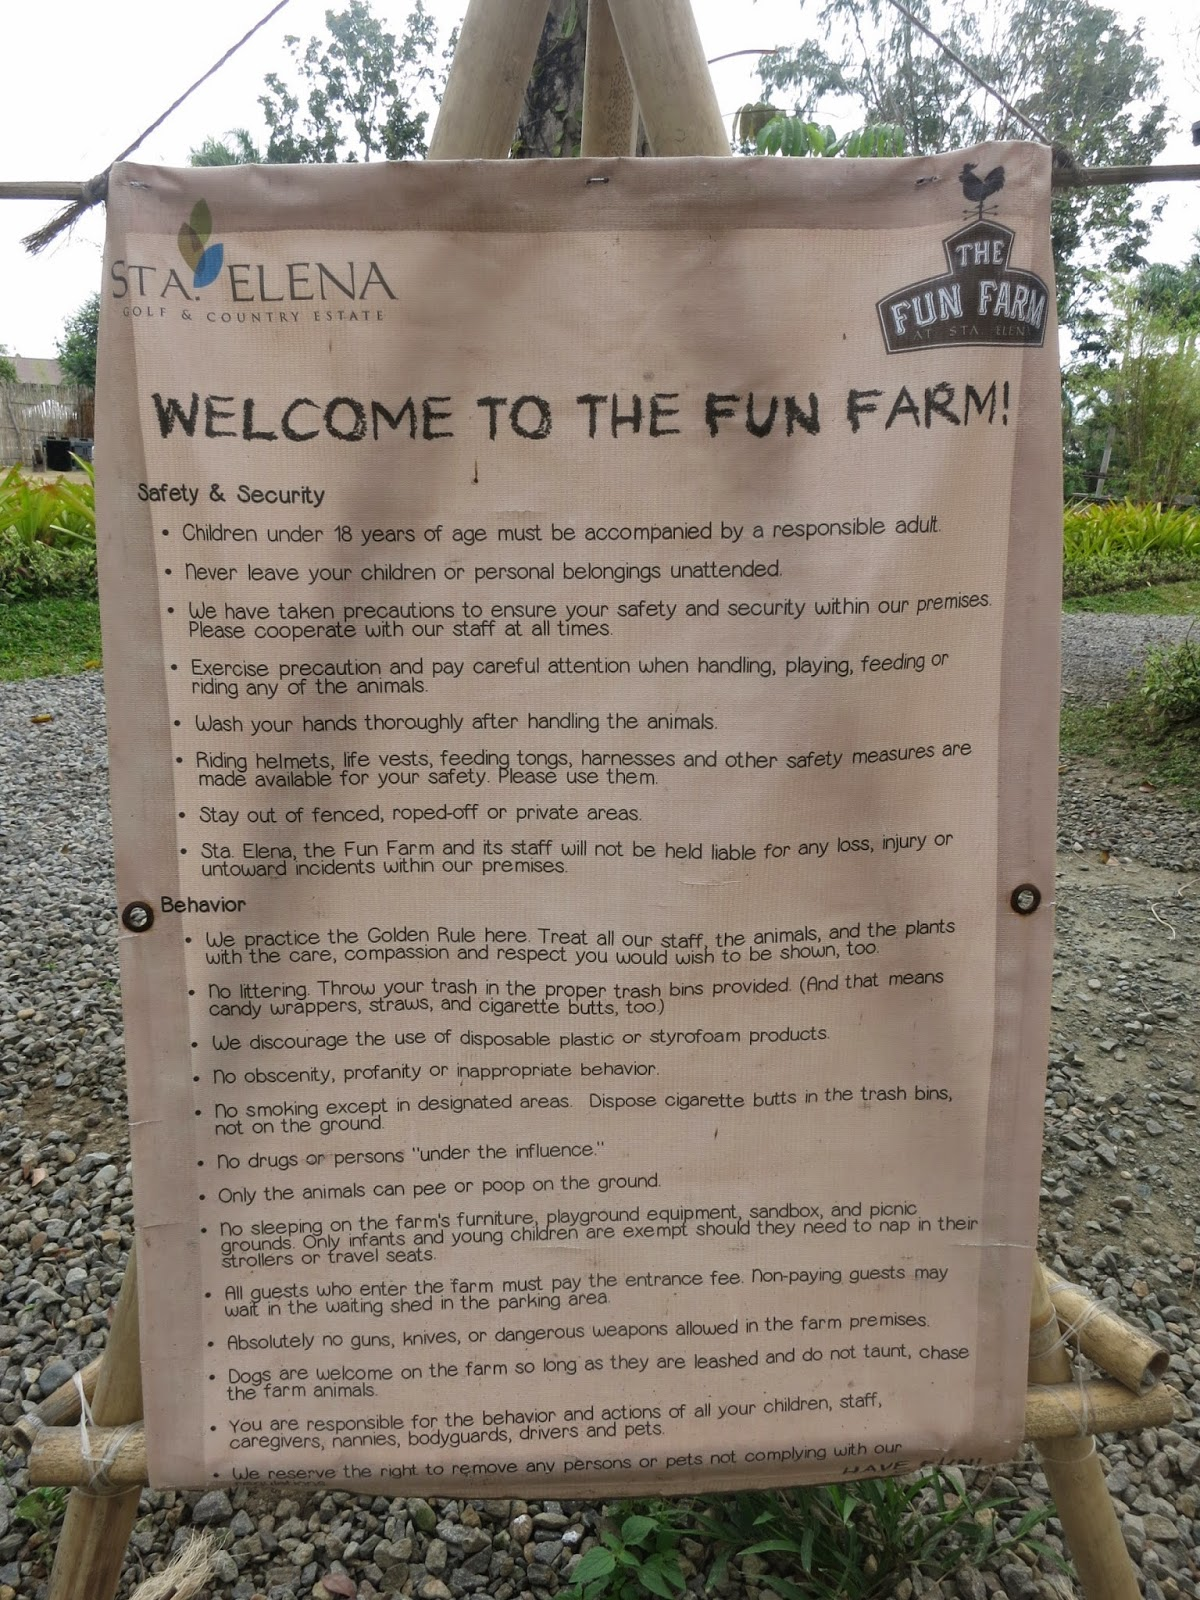 Sta Elena Fun Farm Safety & Security